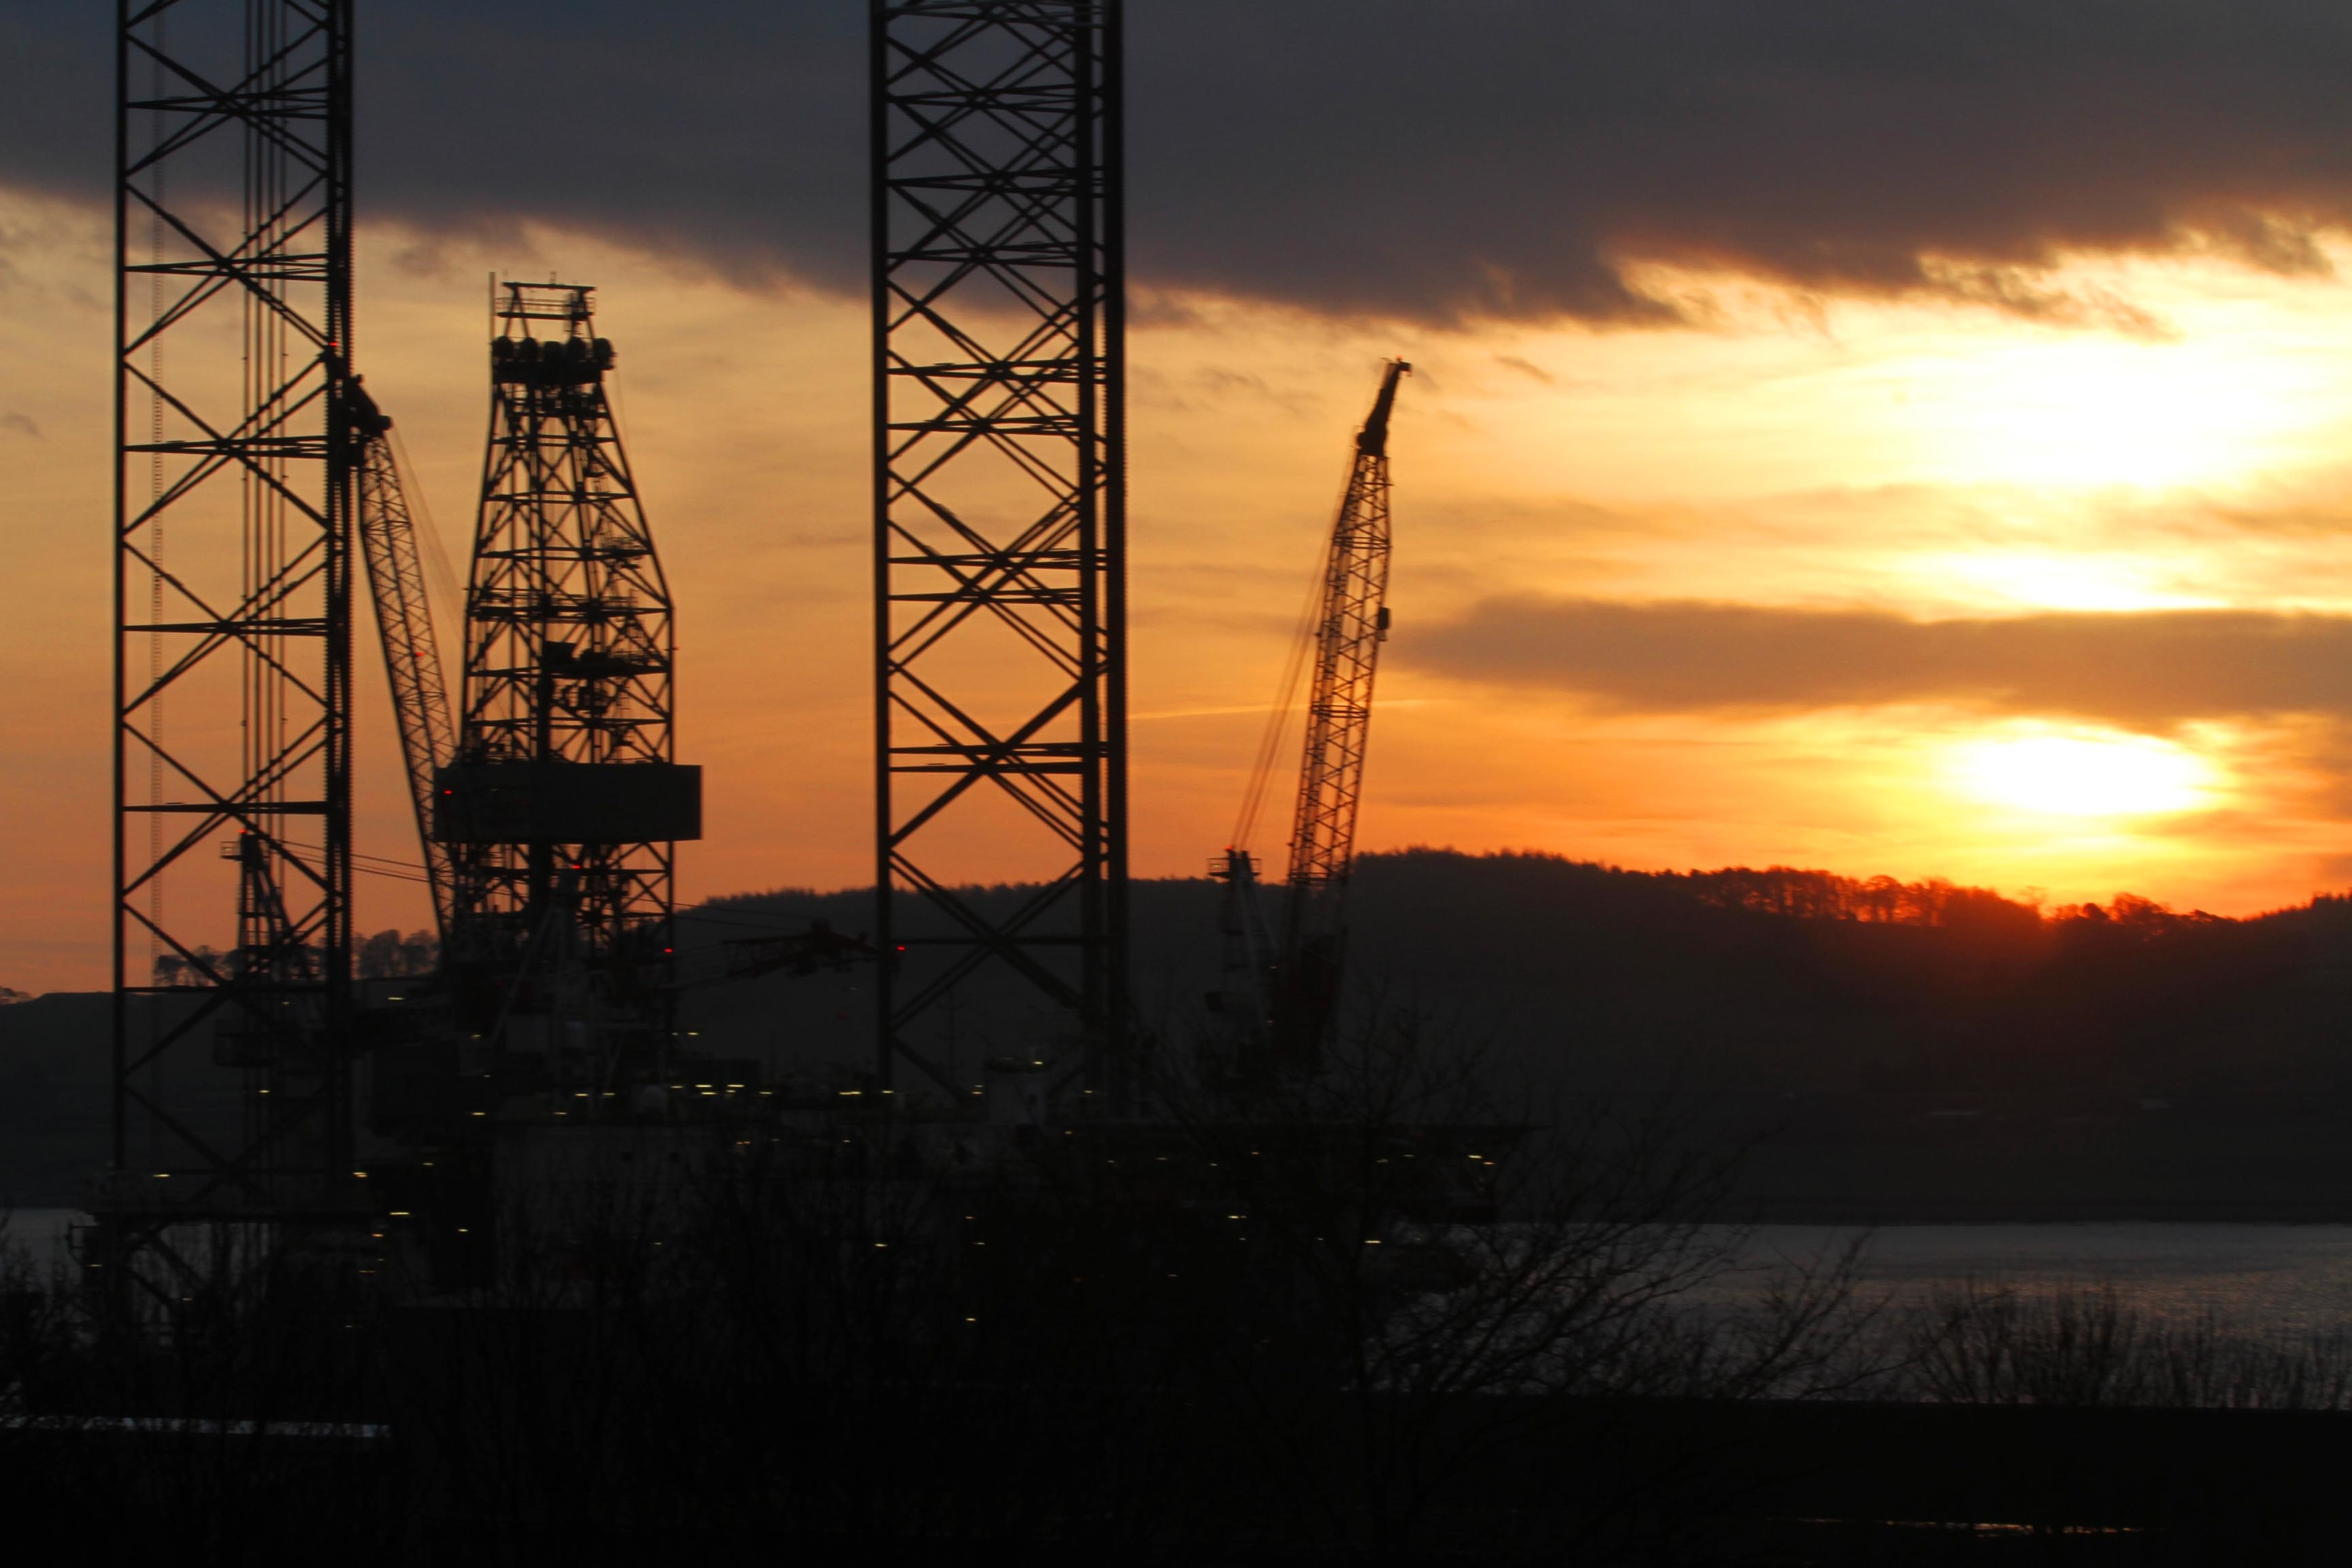 A firey sunrise over Dundee oil rigs today. Taken from Kenilworth Avenue.